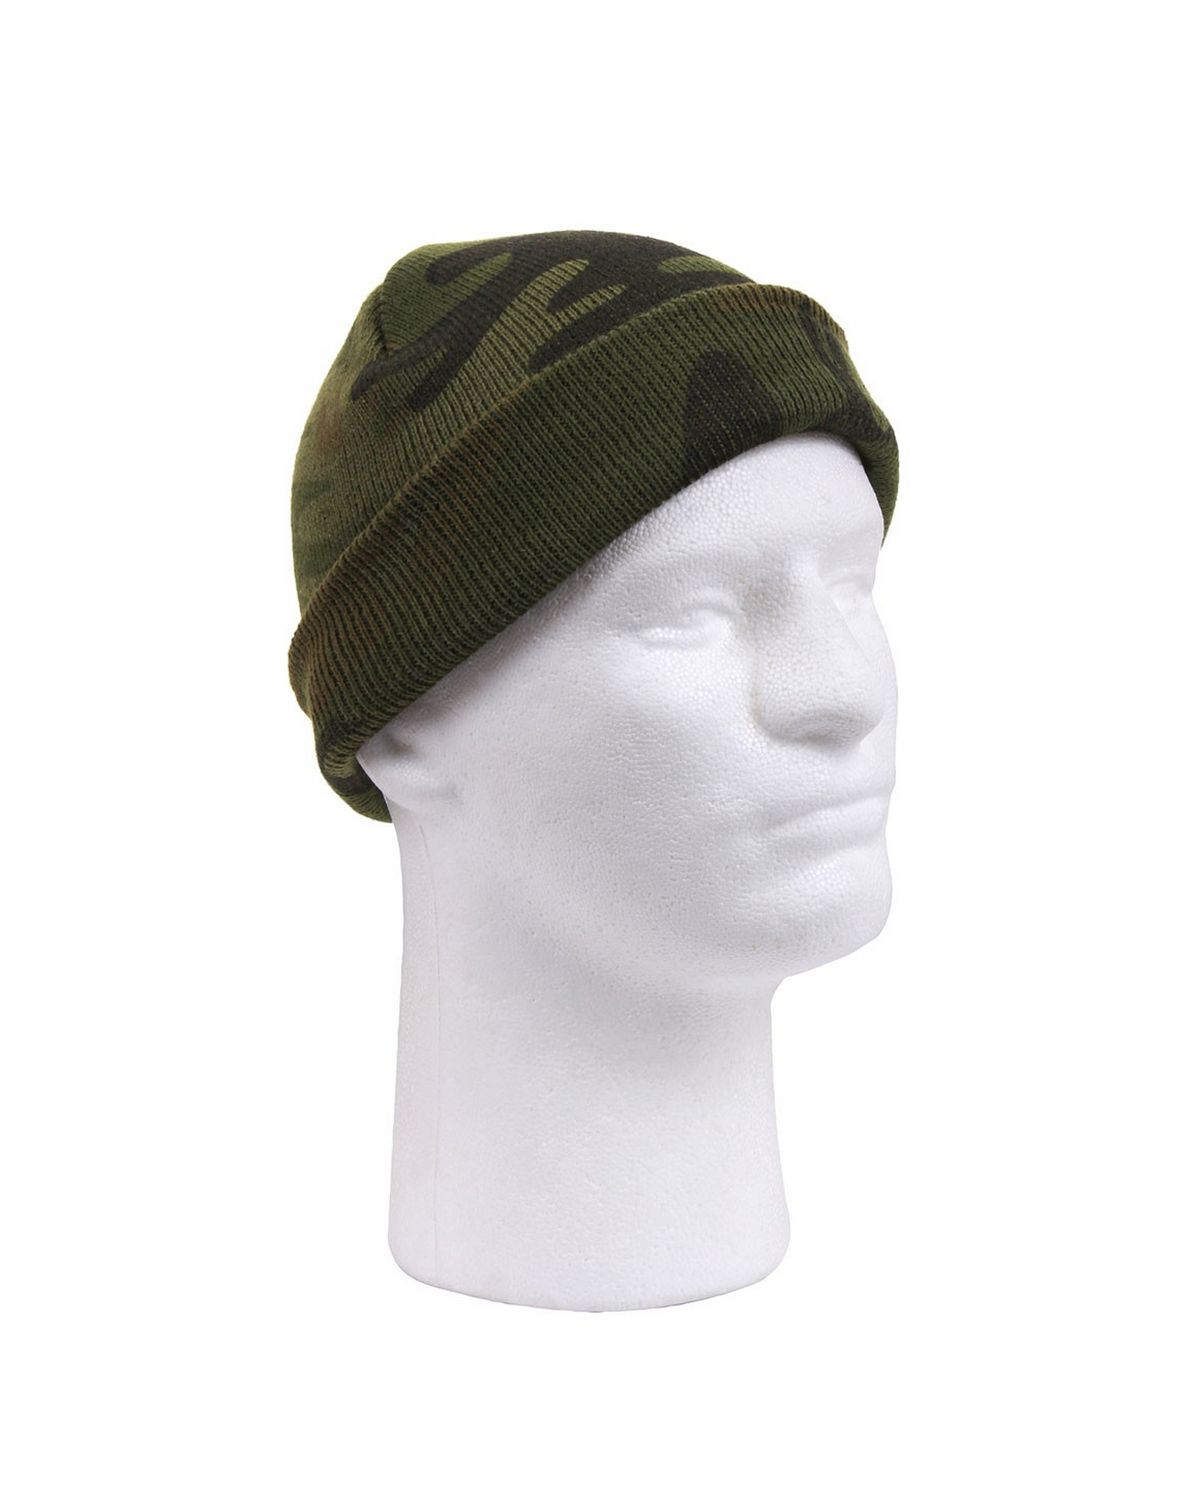 4a86f6a6 Rothco 5709 Deluxe Camo Skull Cap - Free Shipping Available